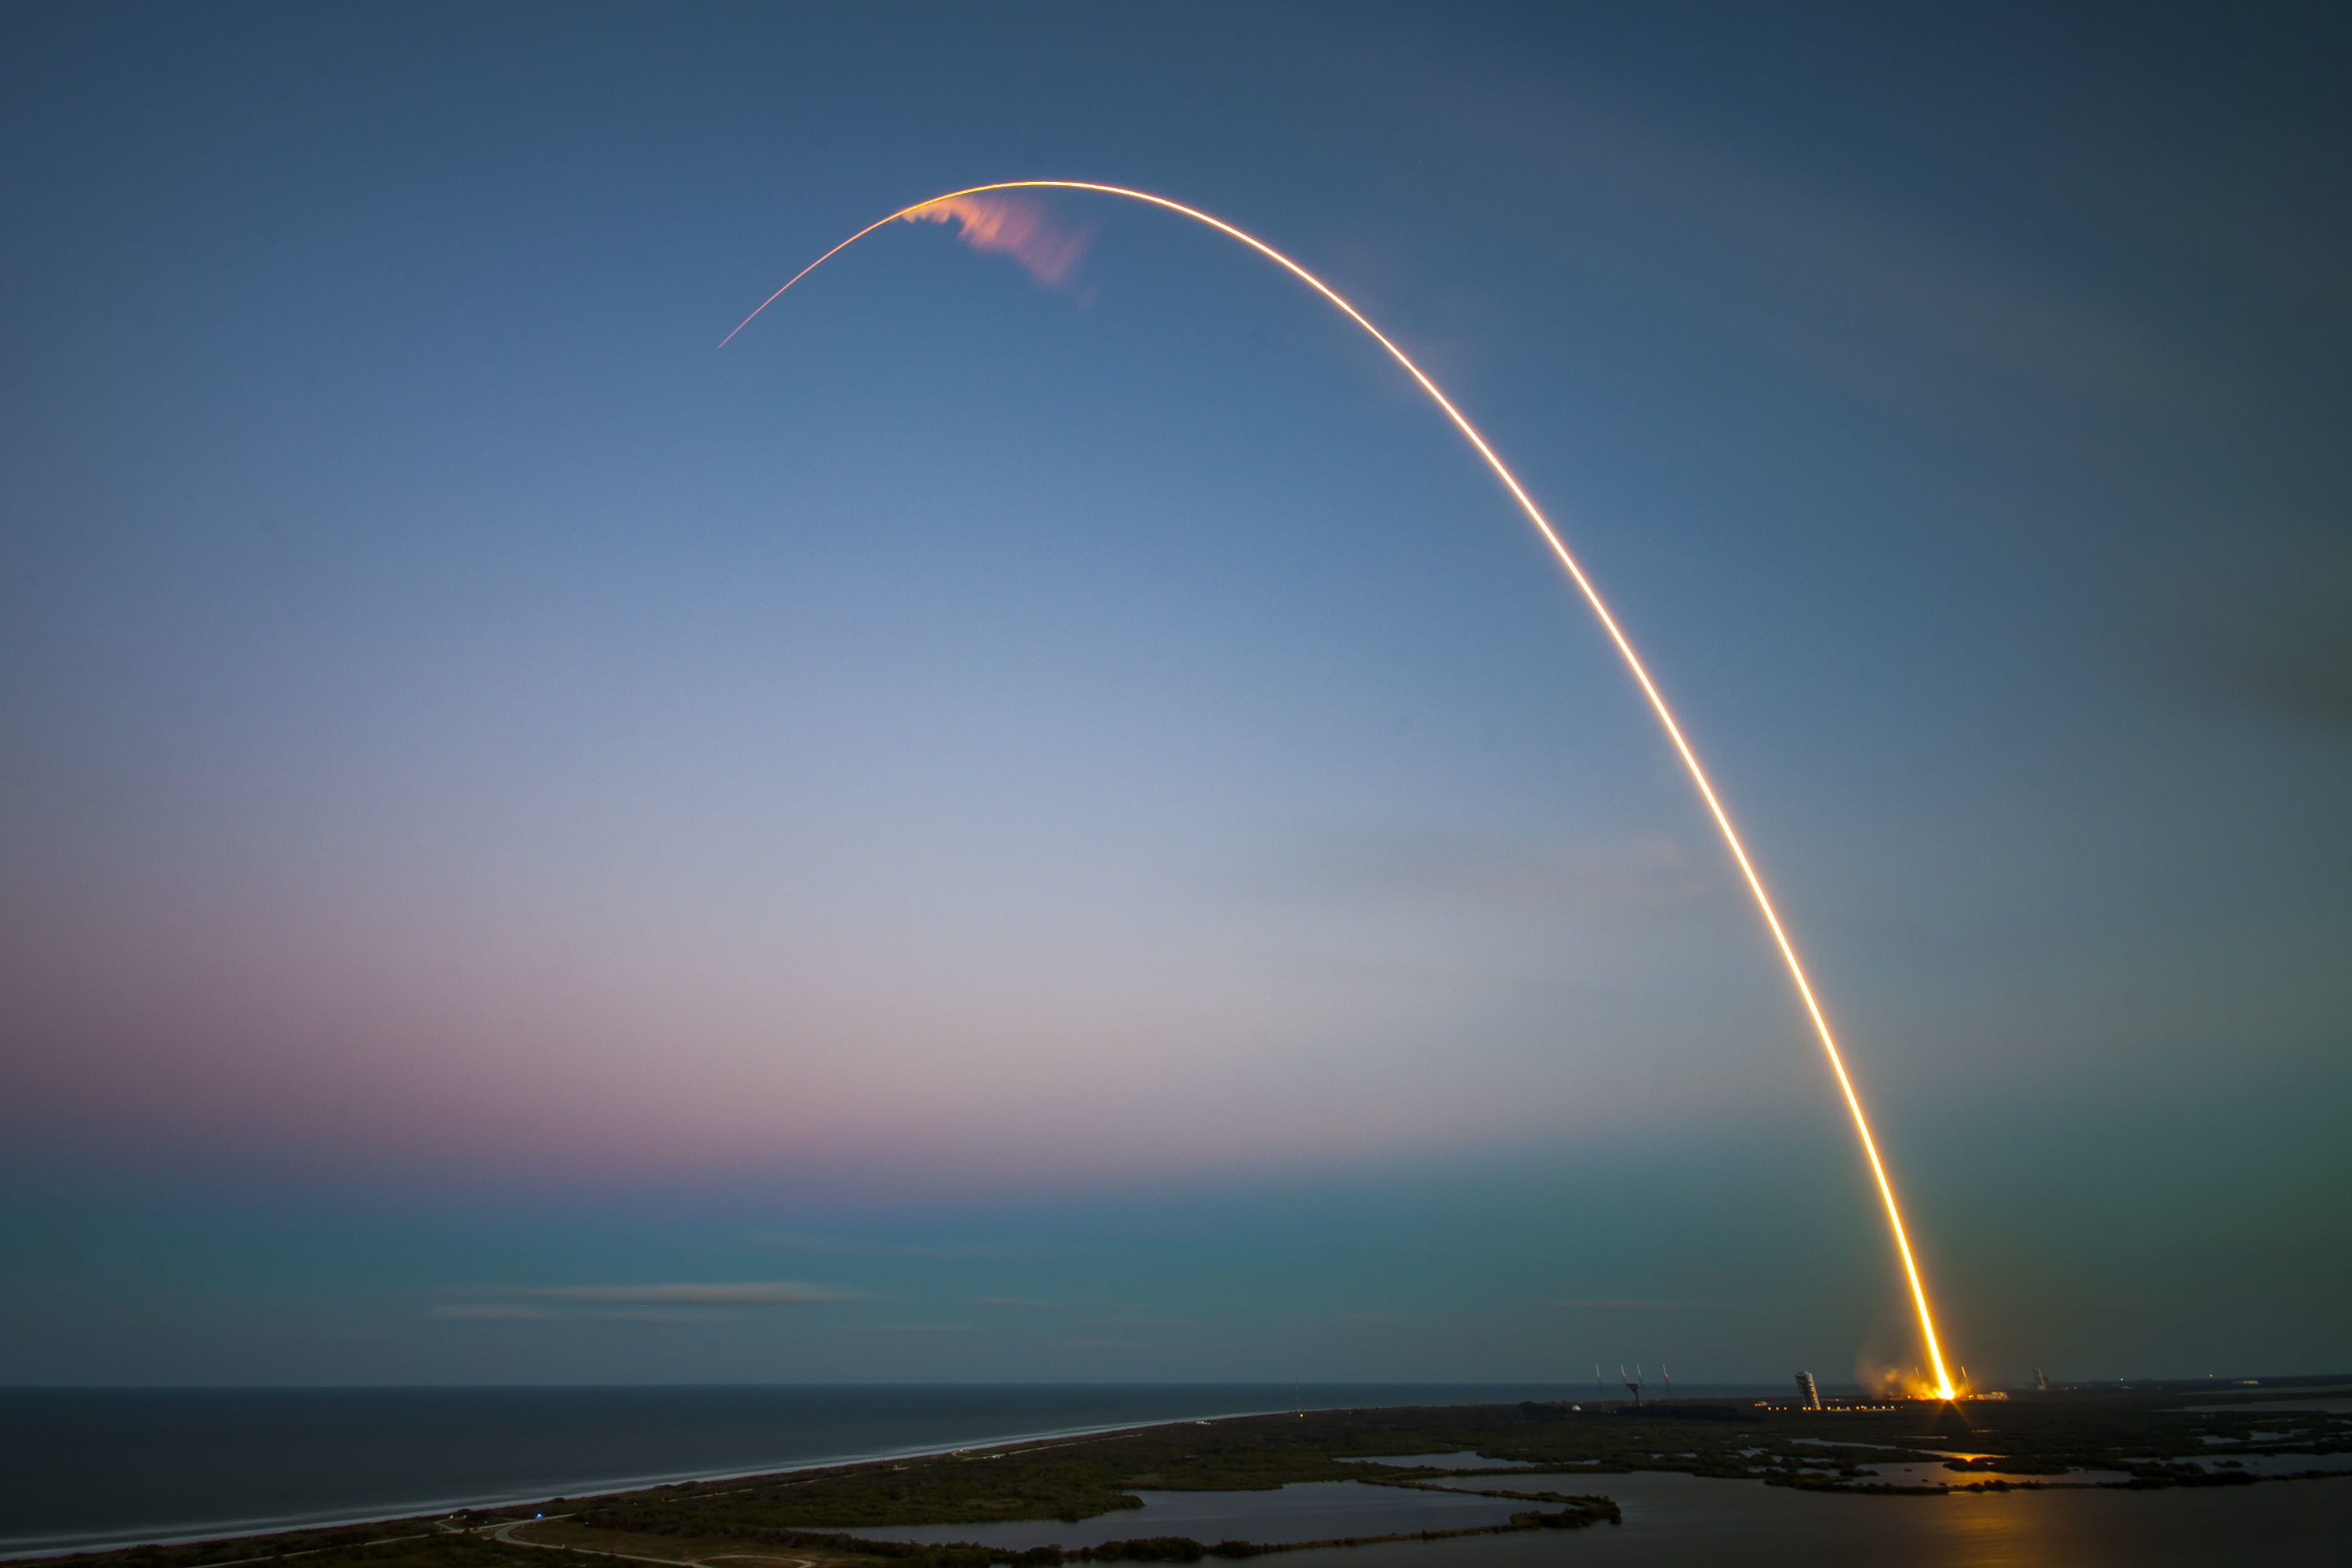 SpaceX's Falcon 9 rocket makes a successful launch with the SES-9 communications satellite in March of 2016.